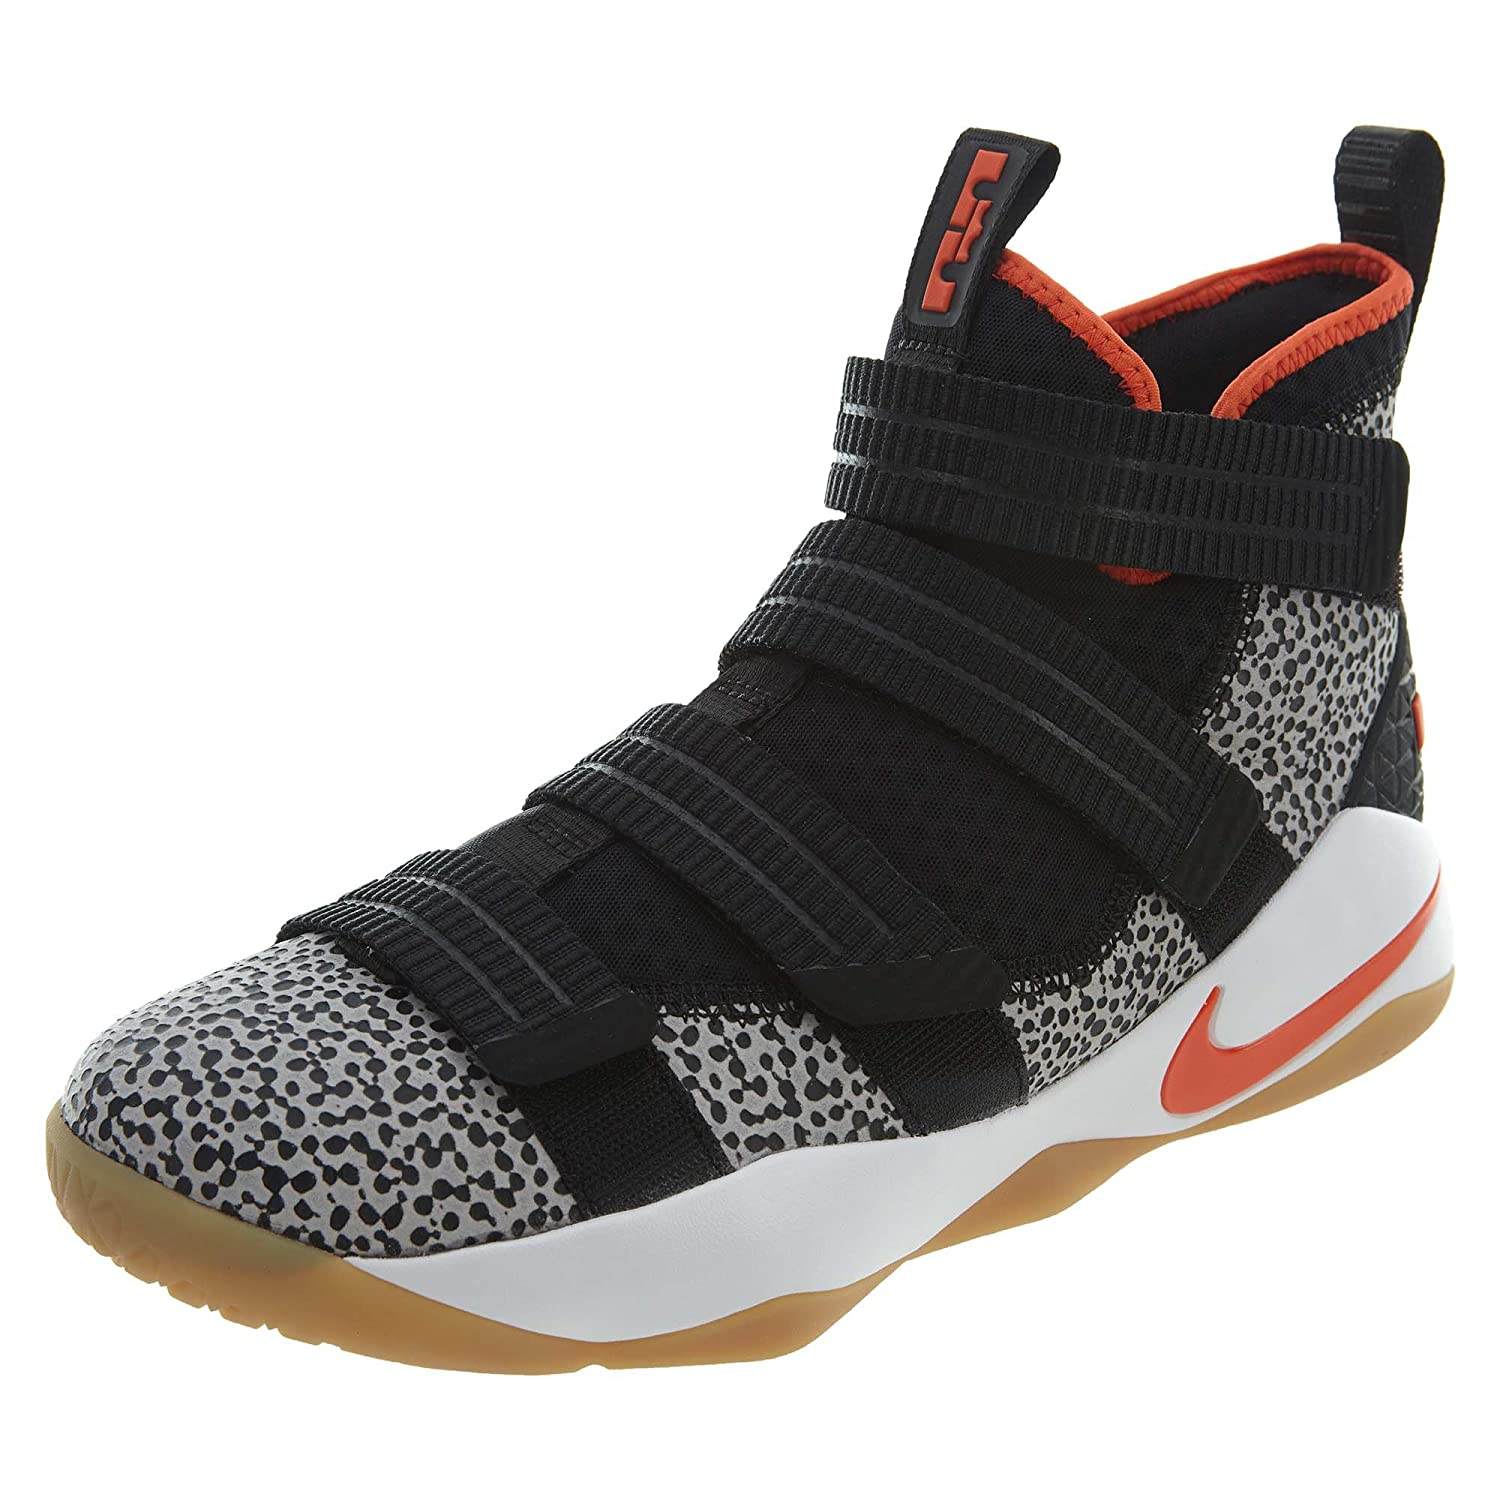 f247dc43b708ab Nike Lebron Soldier Xi SFG (Safari)  Buy Online at Low Prices in India -  Amazon.in